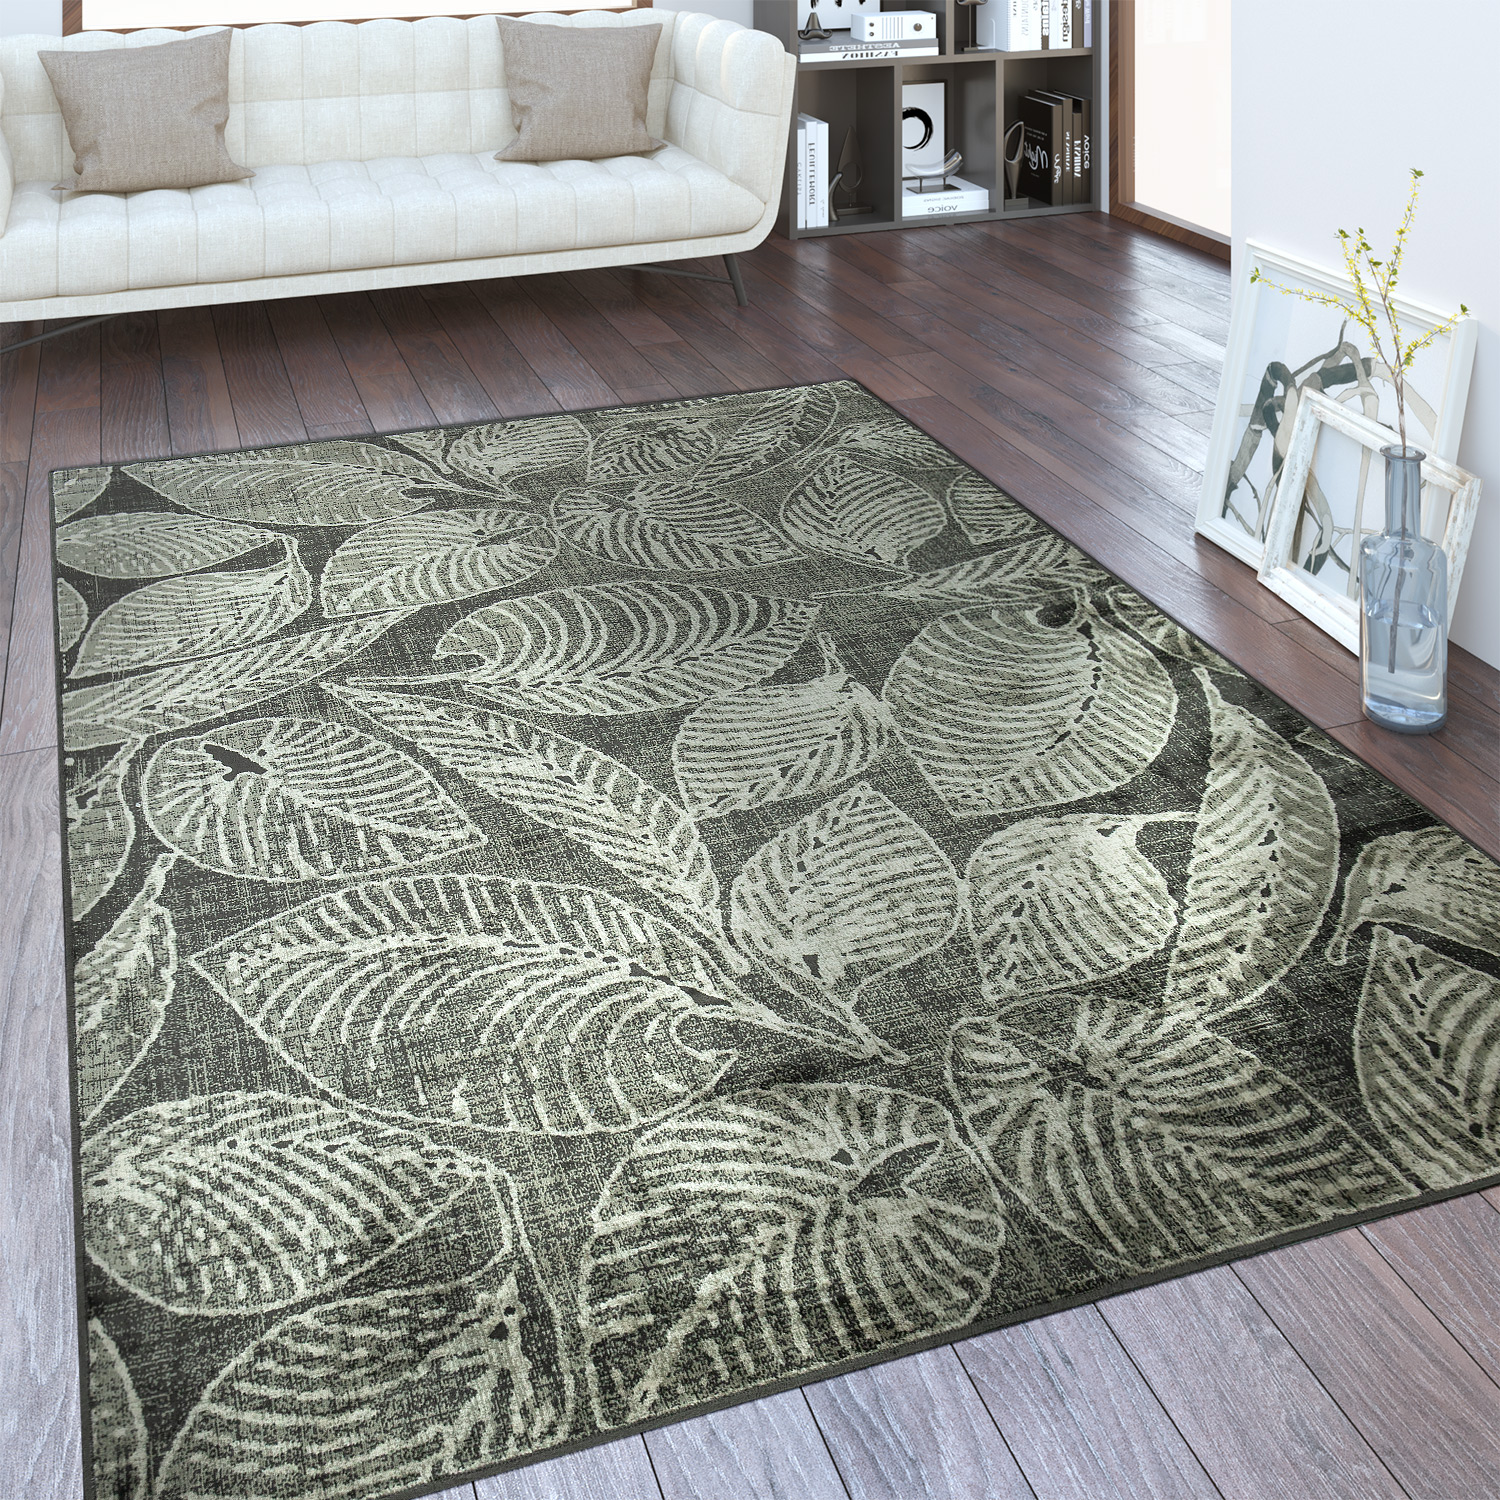 tapis cr ateur feuillage taupe tapis tapis poil ras. Black Bedroom Furniture Sets. Home Design Ideas